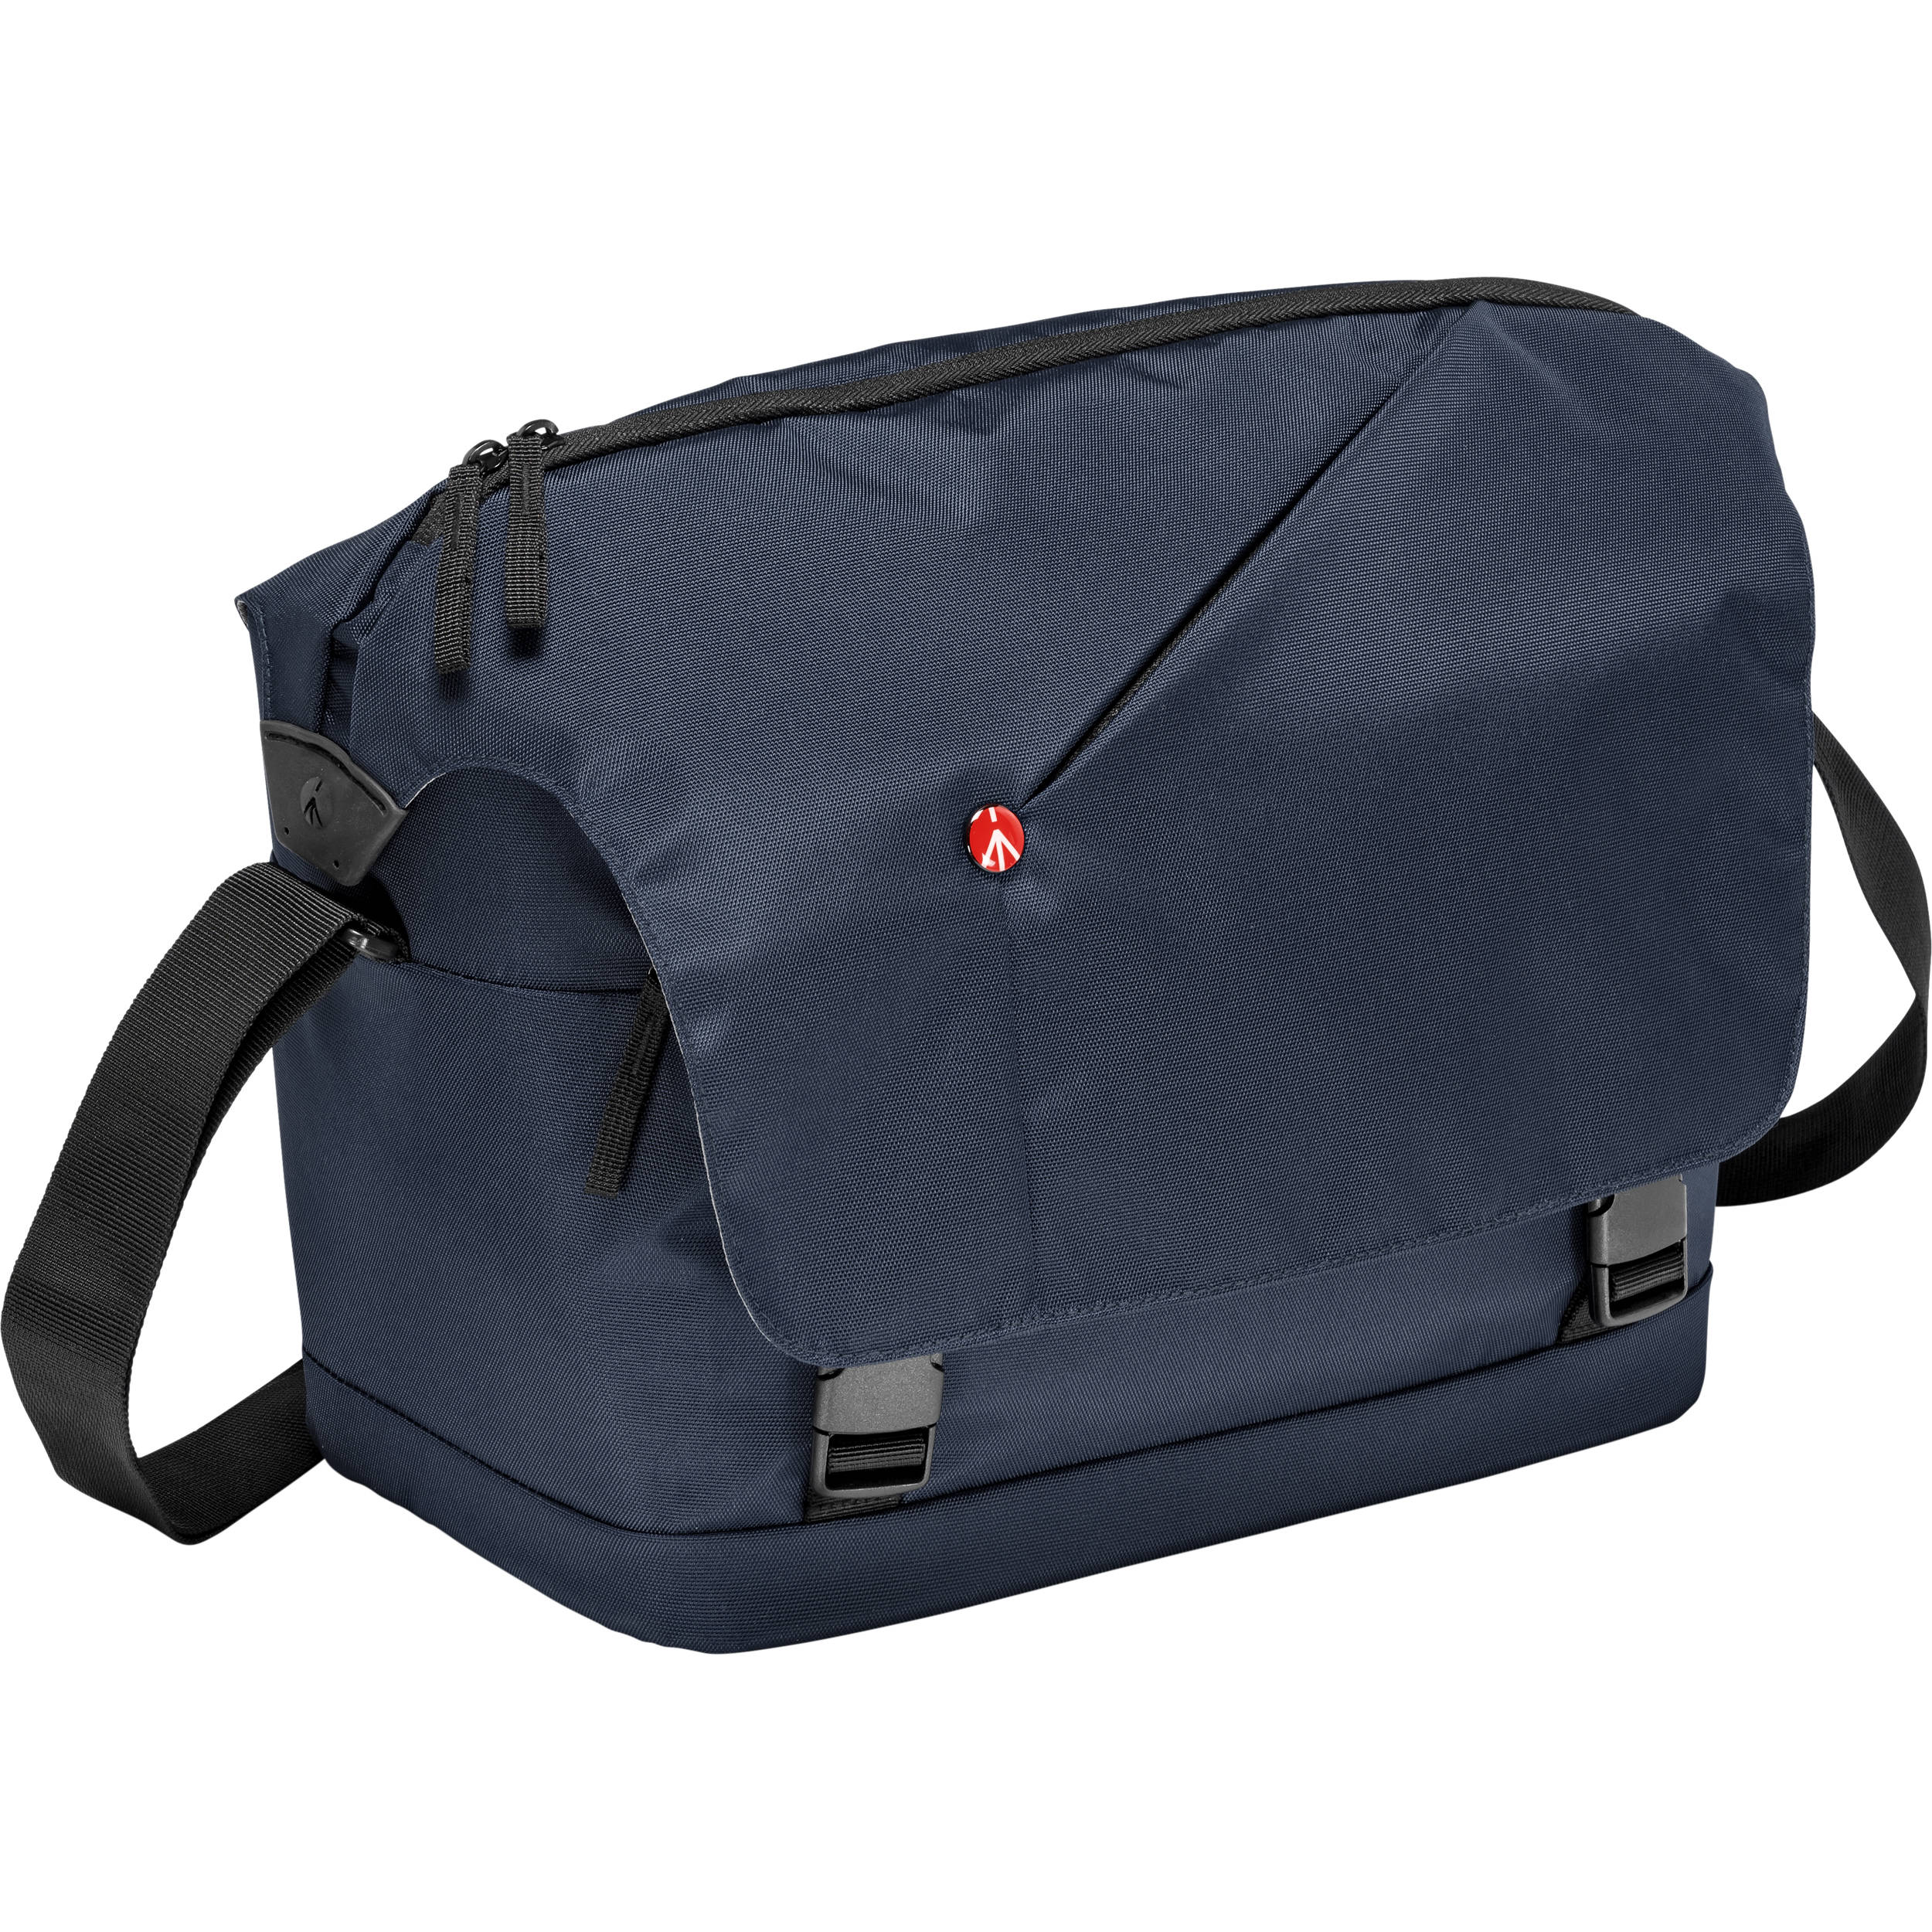 Manfrotto Messenger Camera Bag (Blue) MB NX-M-IBU B&H Photo